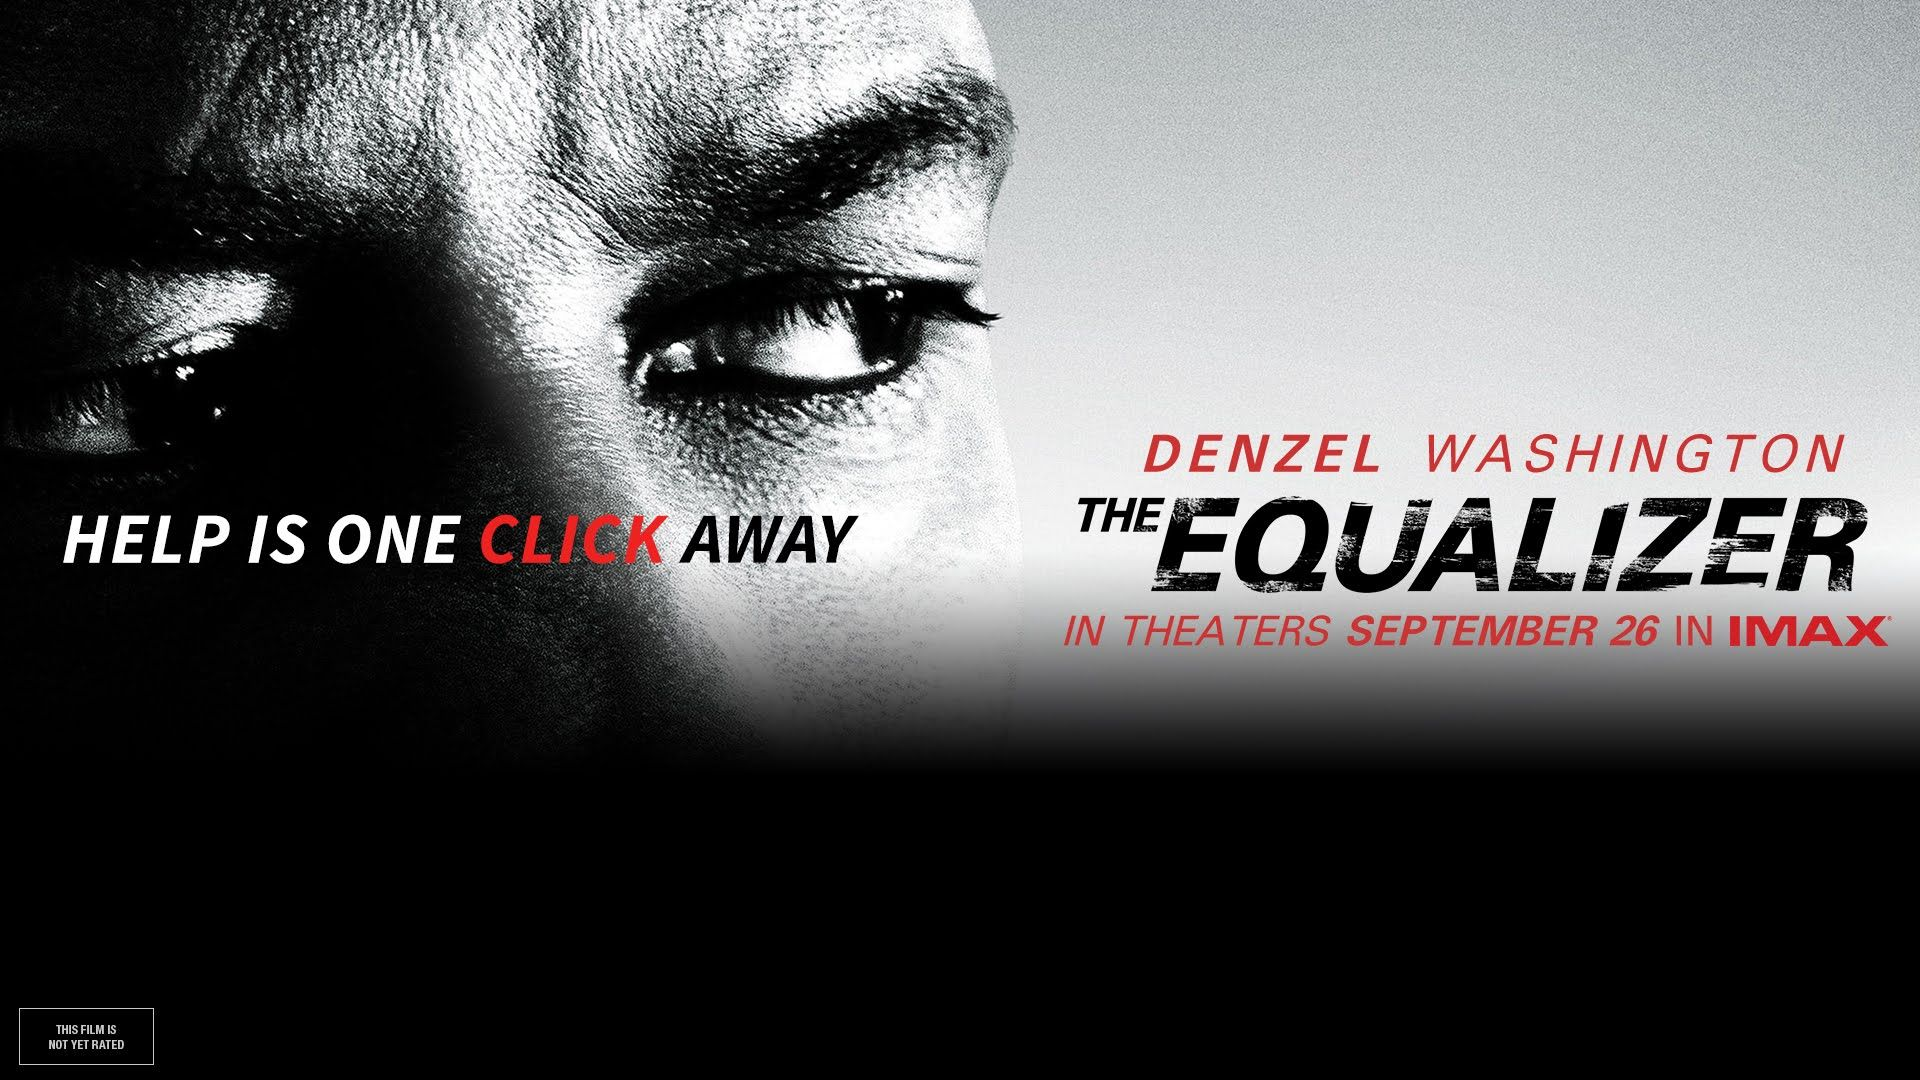 The Equalizer Official Trailer In Theaters 9/26